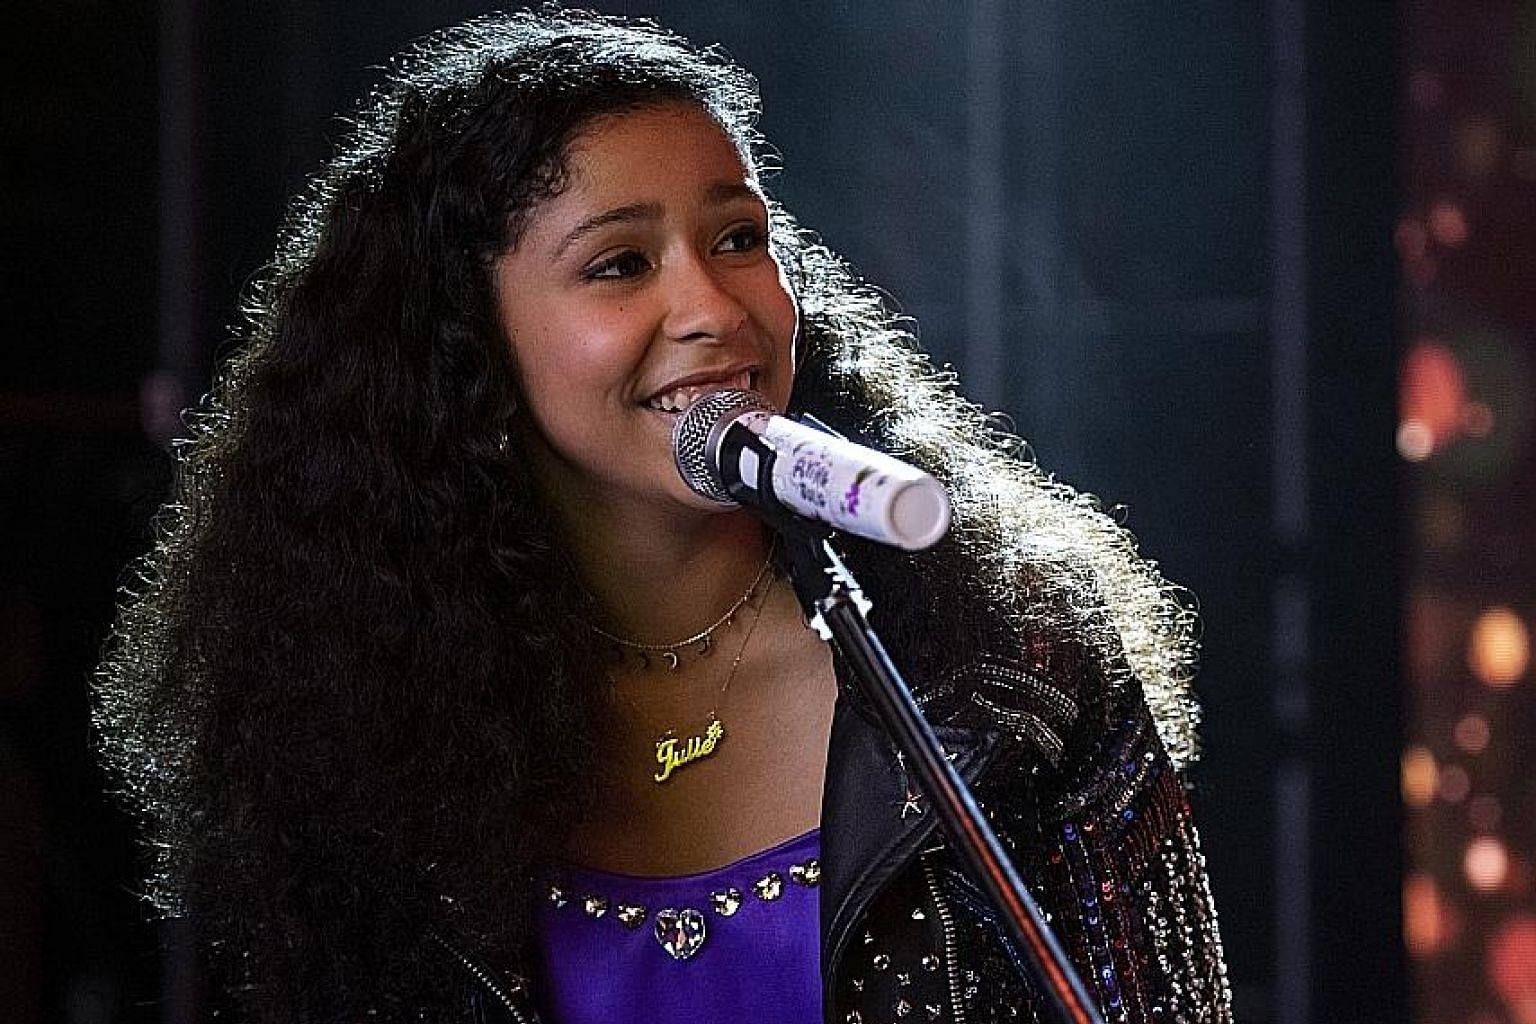 Madison Reyes as the title character in teen musical series Julie And The Phantoms.